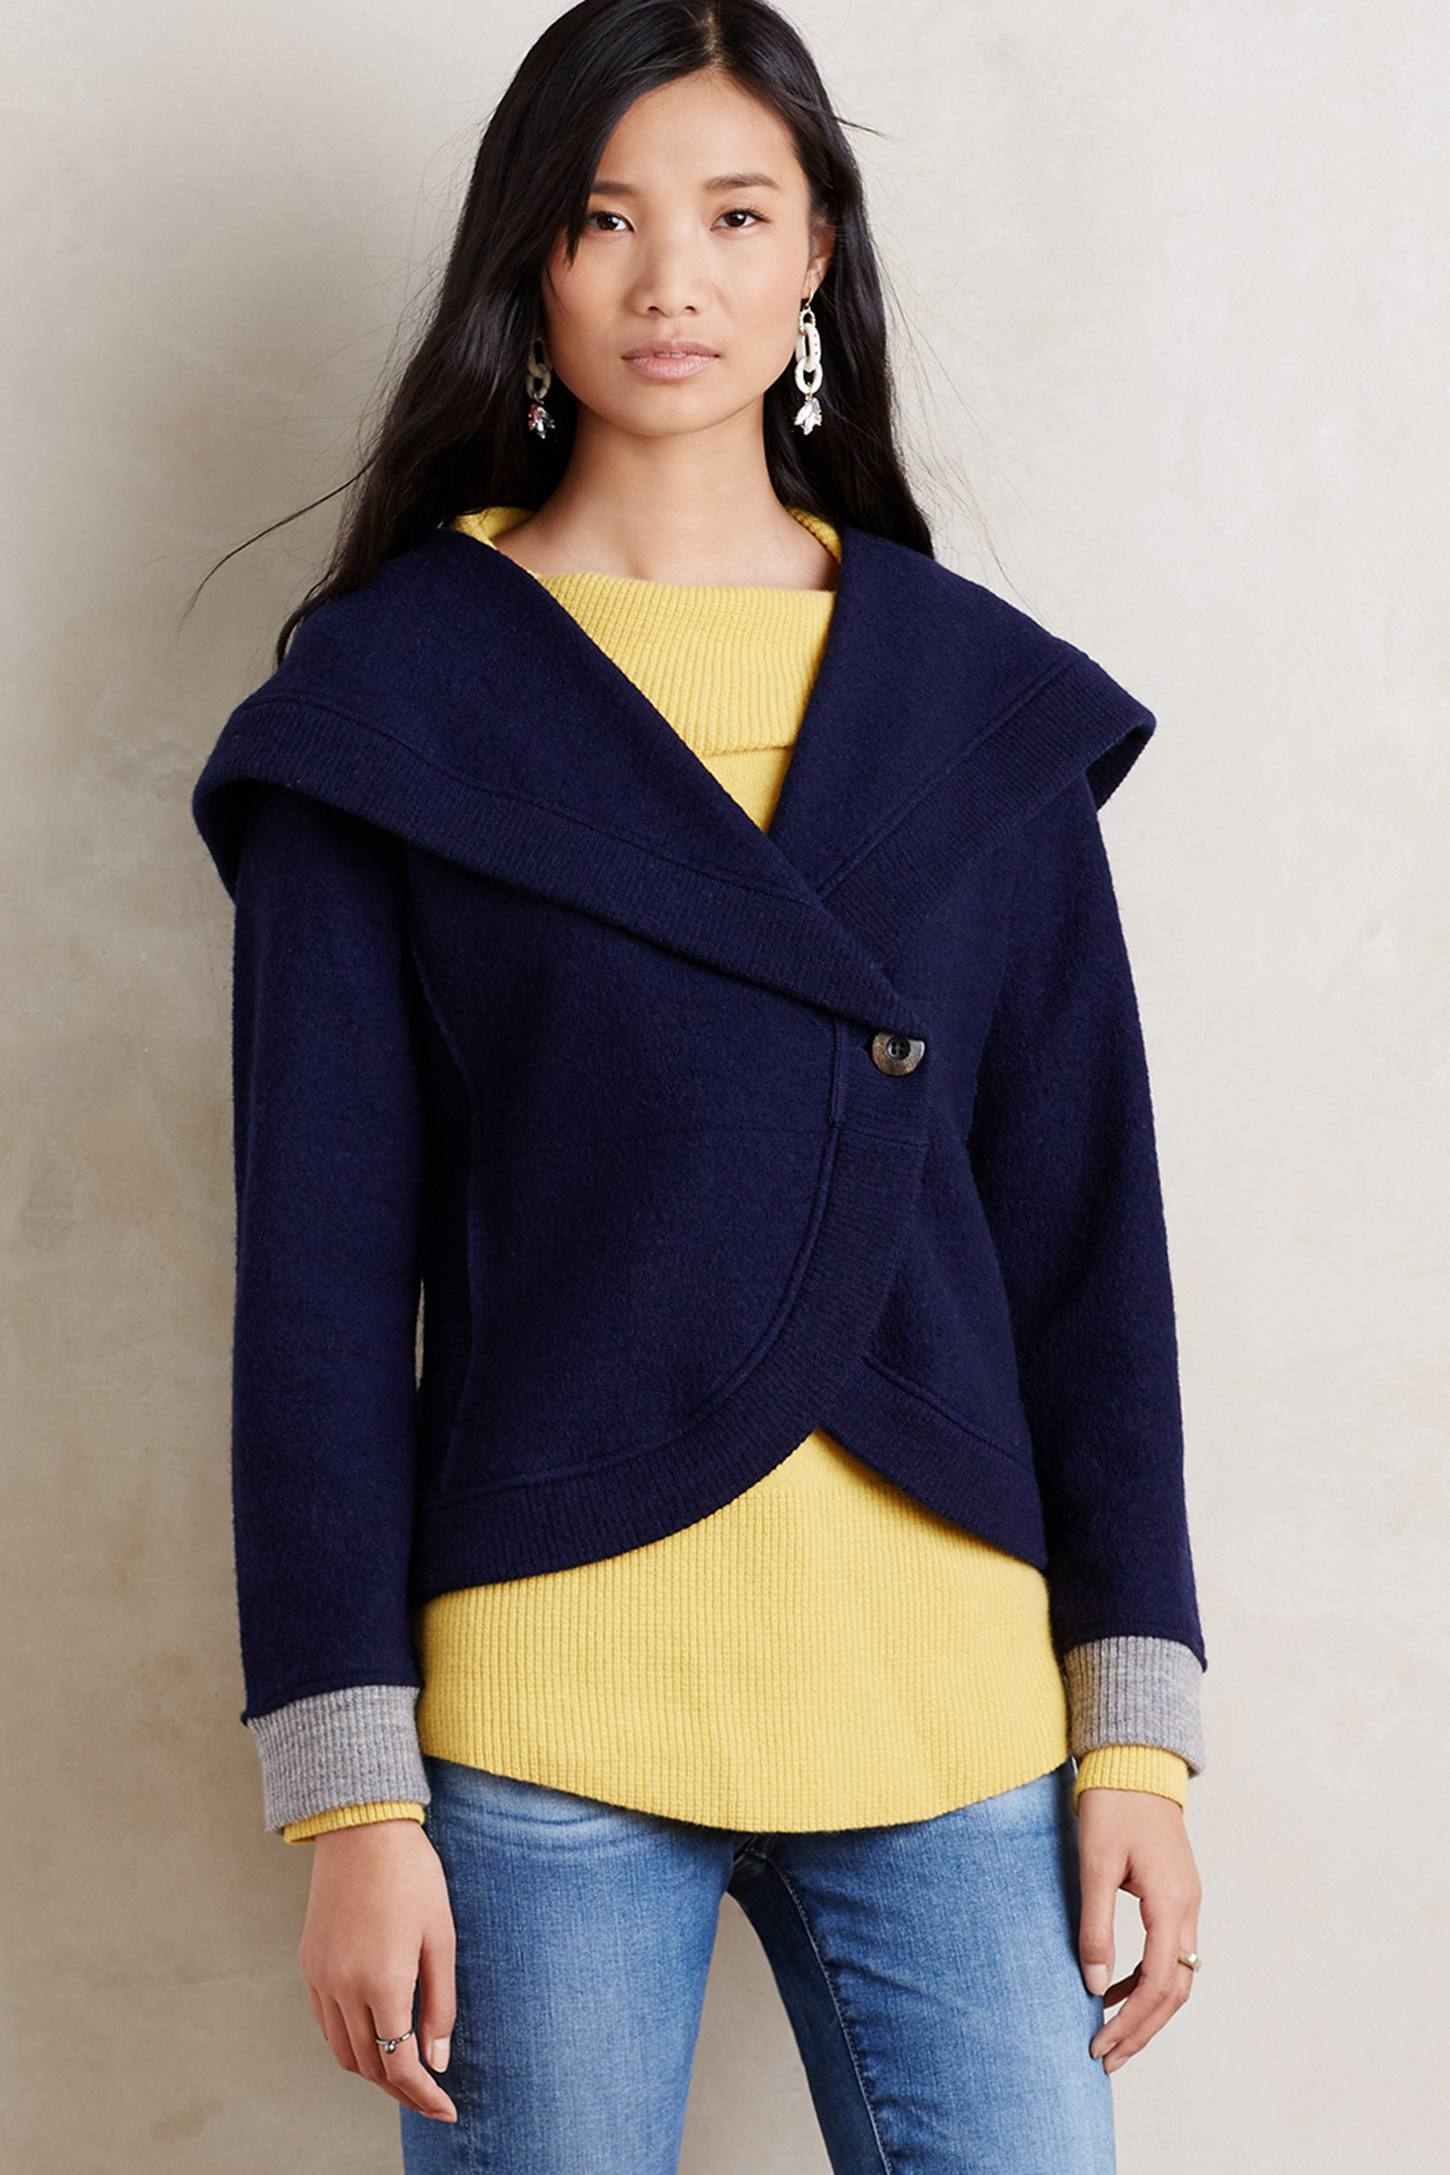 Sparrow Shawled Boiled Wool Jacket in Blue | Lyst